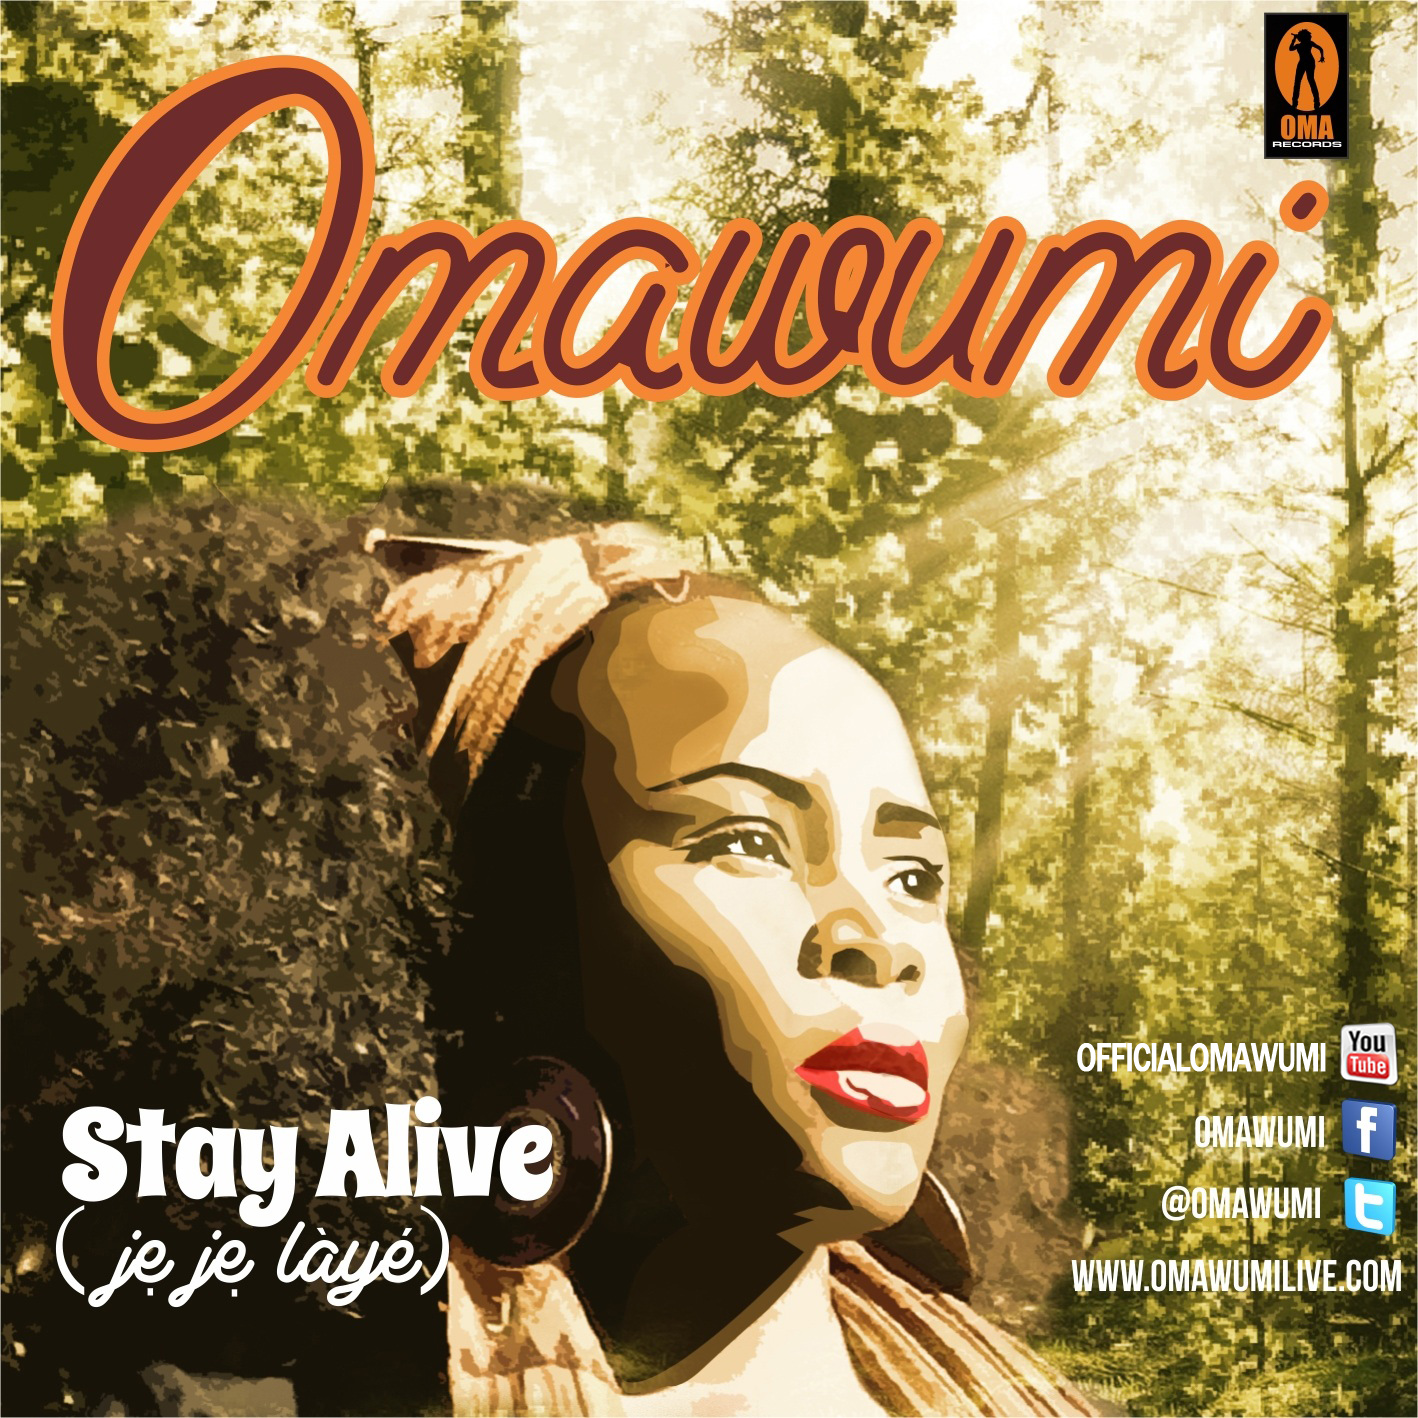 Omawumi - STAY ALIVE [Jeje Laye] Artwork | AceWorldTeam.com